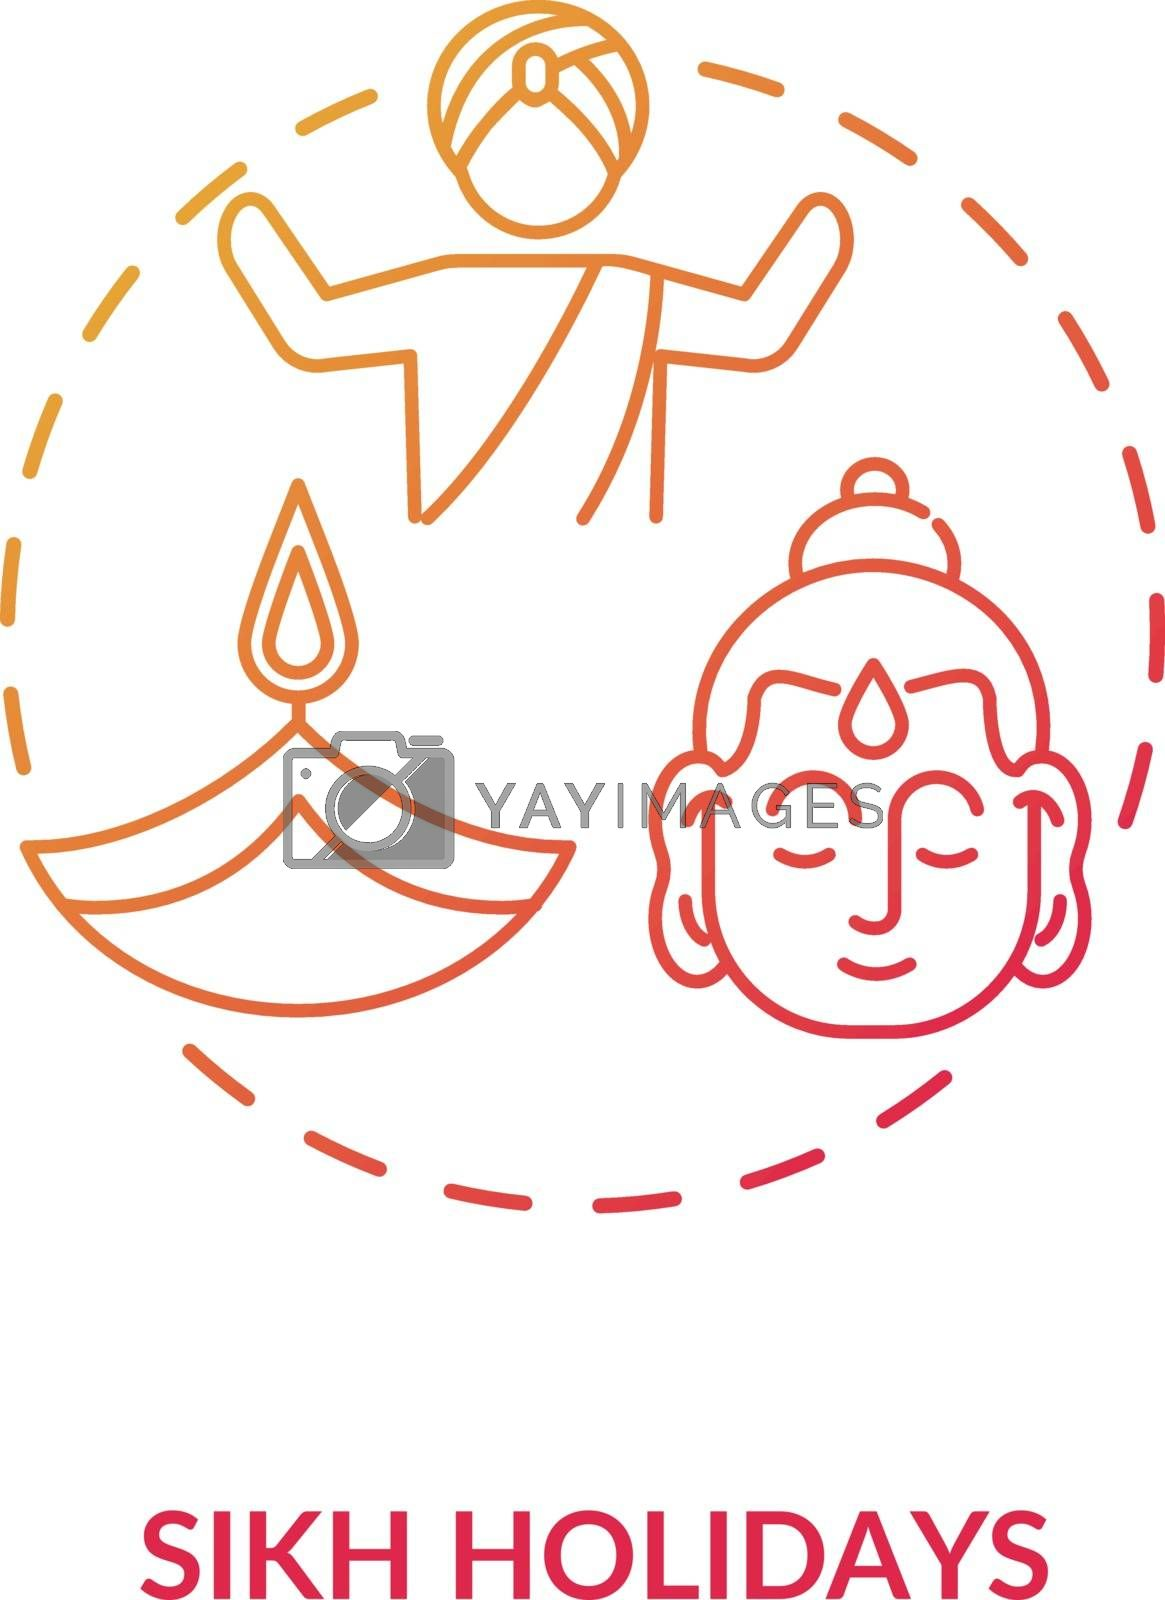 Sikh holidays concept icon. Indian religious festivals, traditions and culture celebration. Sikhism idea thin line illustration. Vector isolated outline RGB color drawing